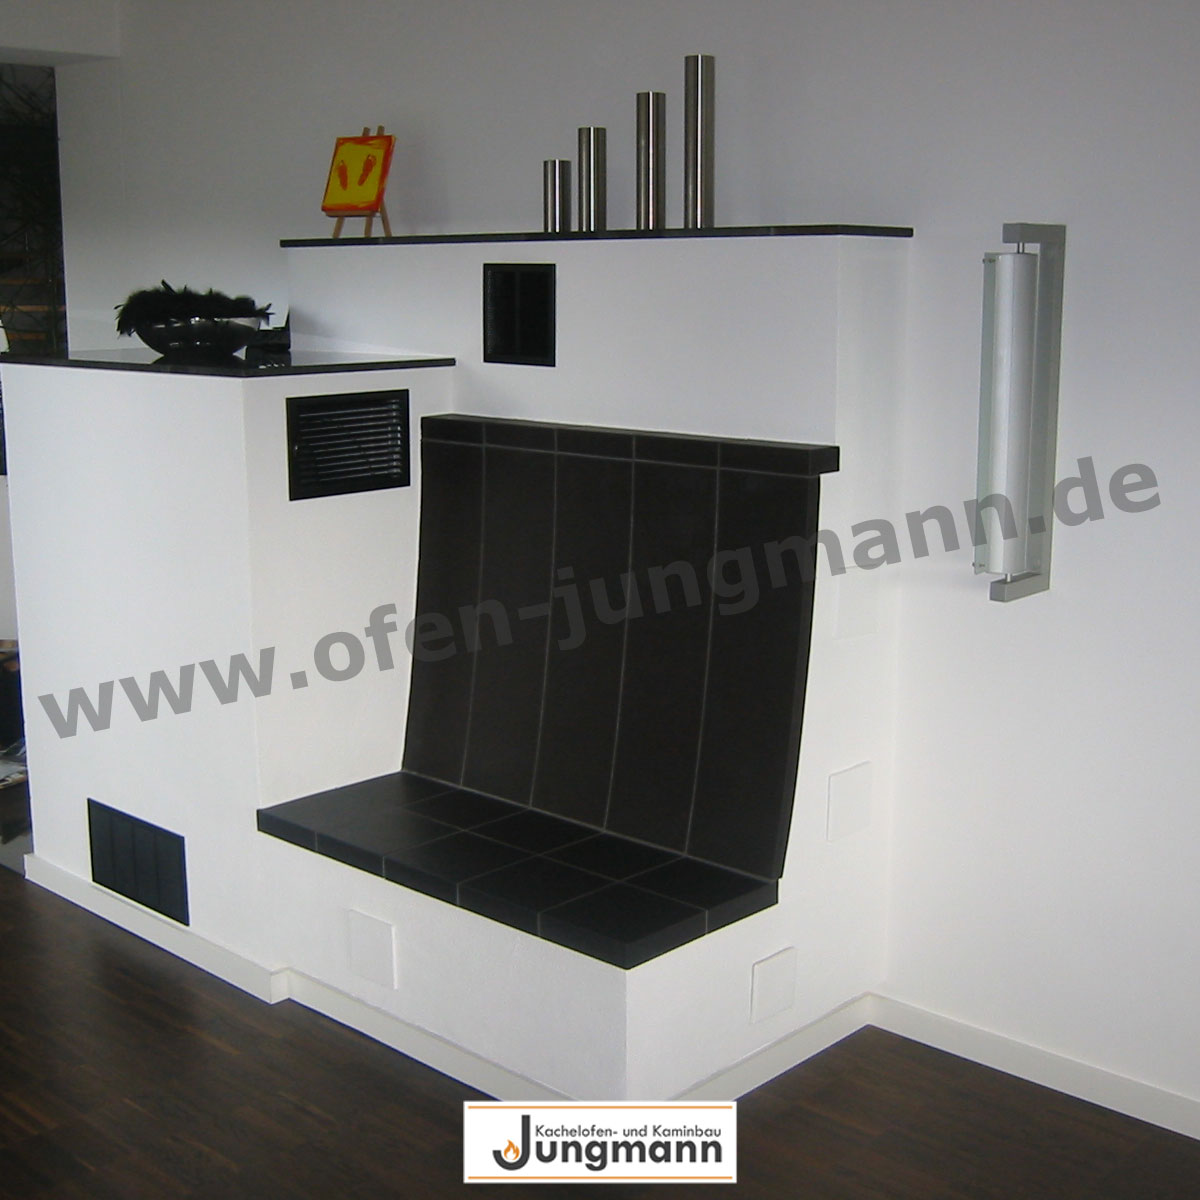 referenzen f r kamine kaminbau ofen kaminofen in. Black Bedroom Furniture Sets. Home Design Ideas